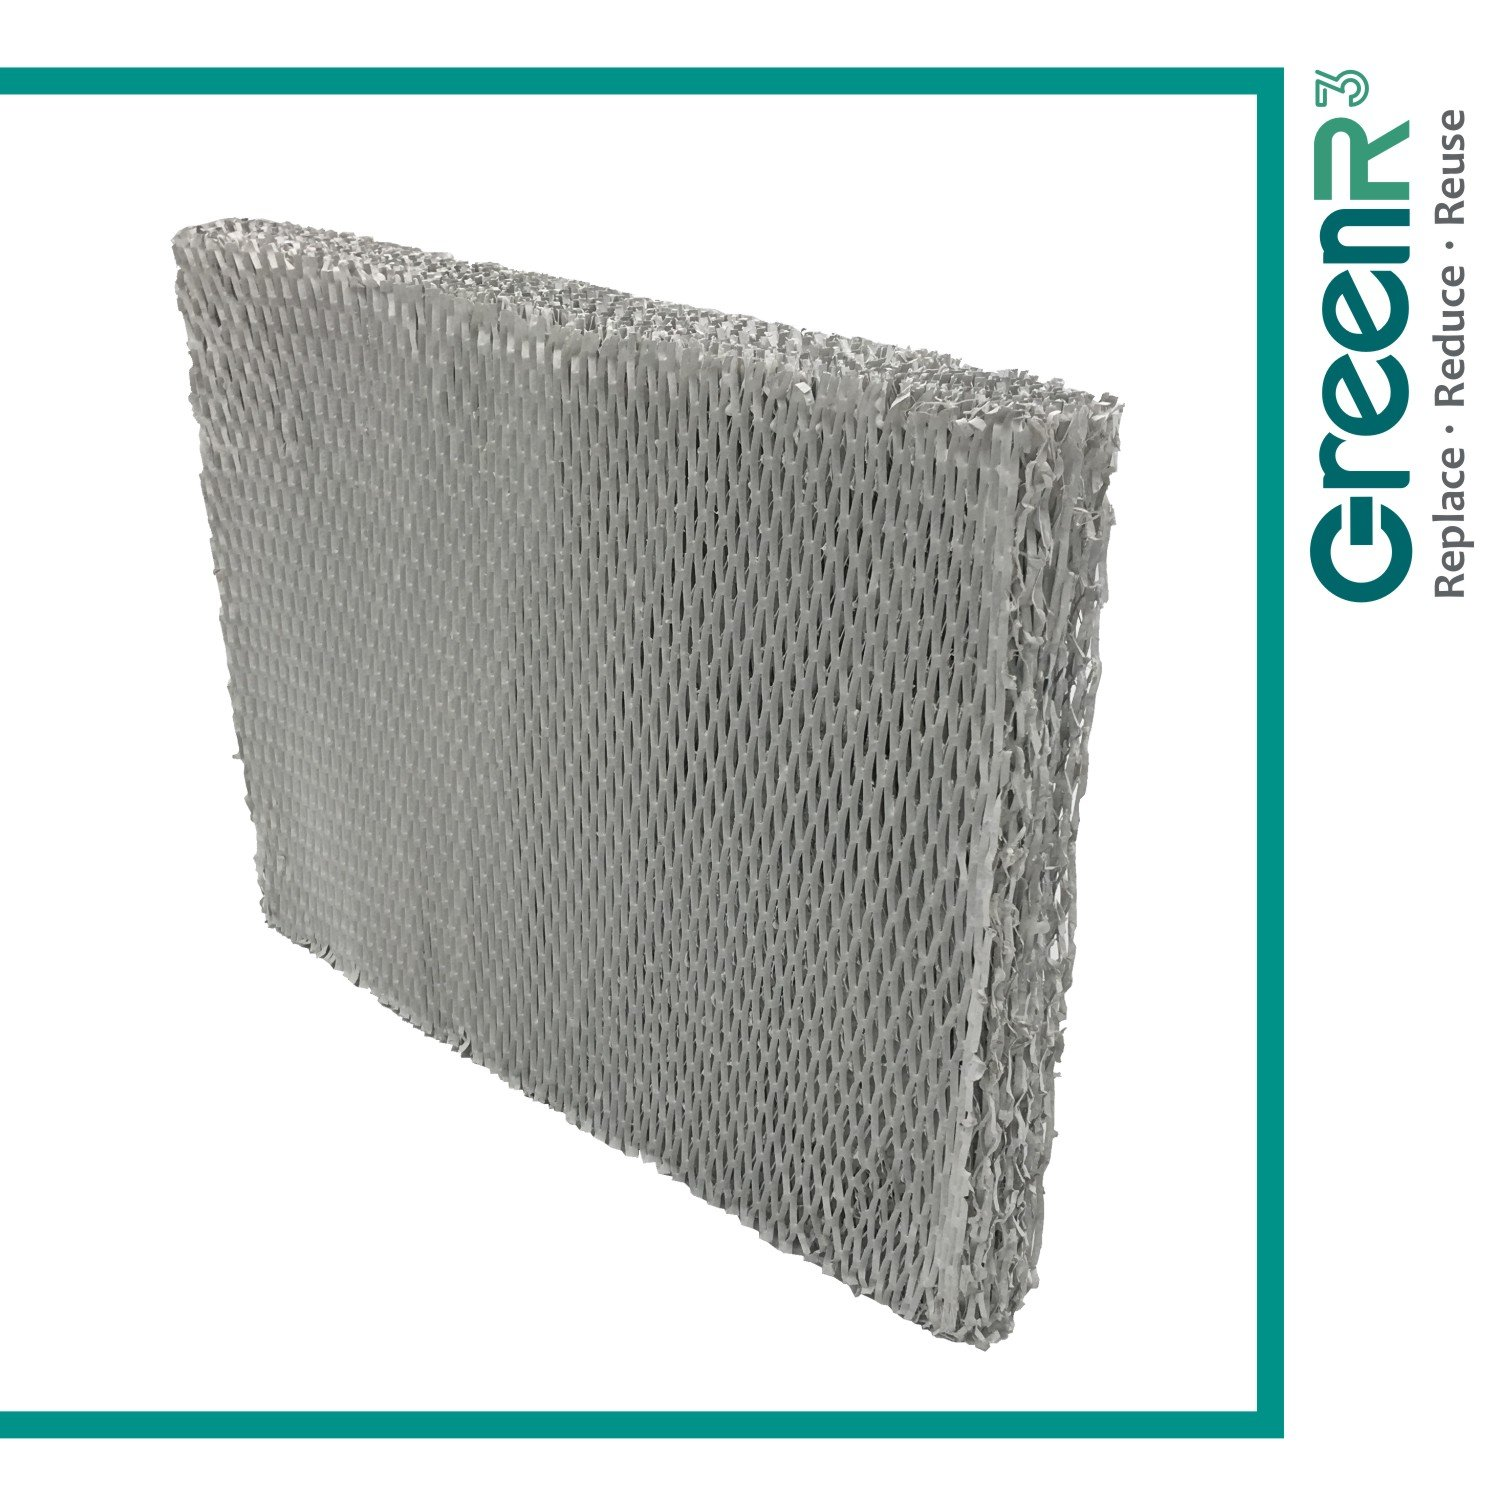 GreenR3 1-PACK Wick Filters Humidifiers for Aprilaire #35 Water Panel fits 560 Honeywell HE260 260A Bryant HUMBALBP 2317 Carrier HUMBBLBP 2217 Lennox WB2-17 Totaline P110-LFP1218 35R Part and more Compatible